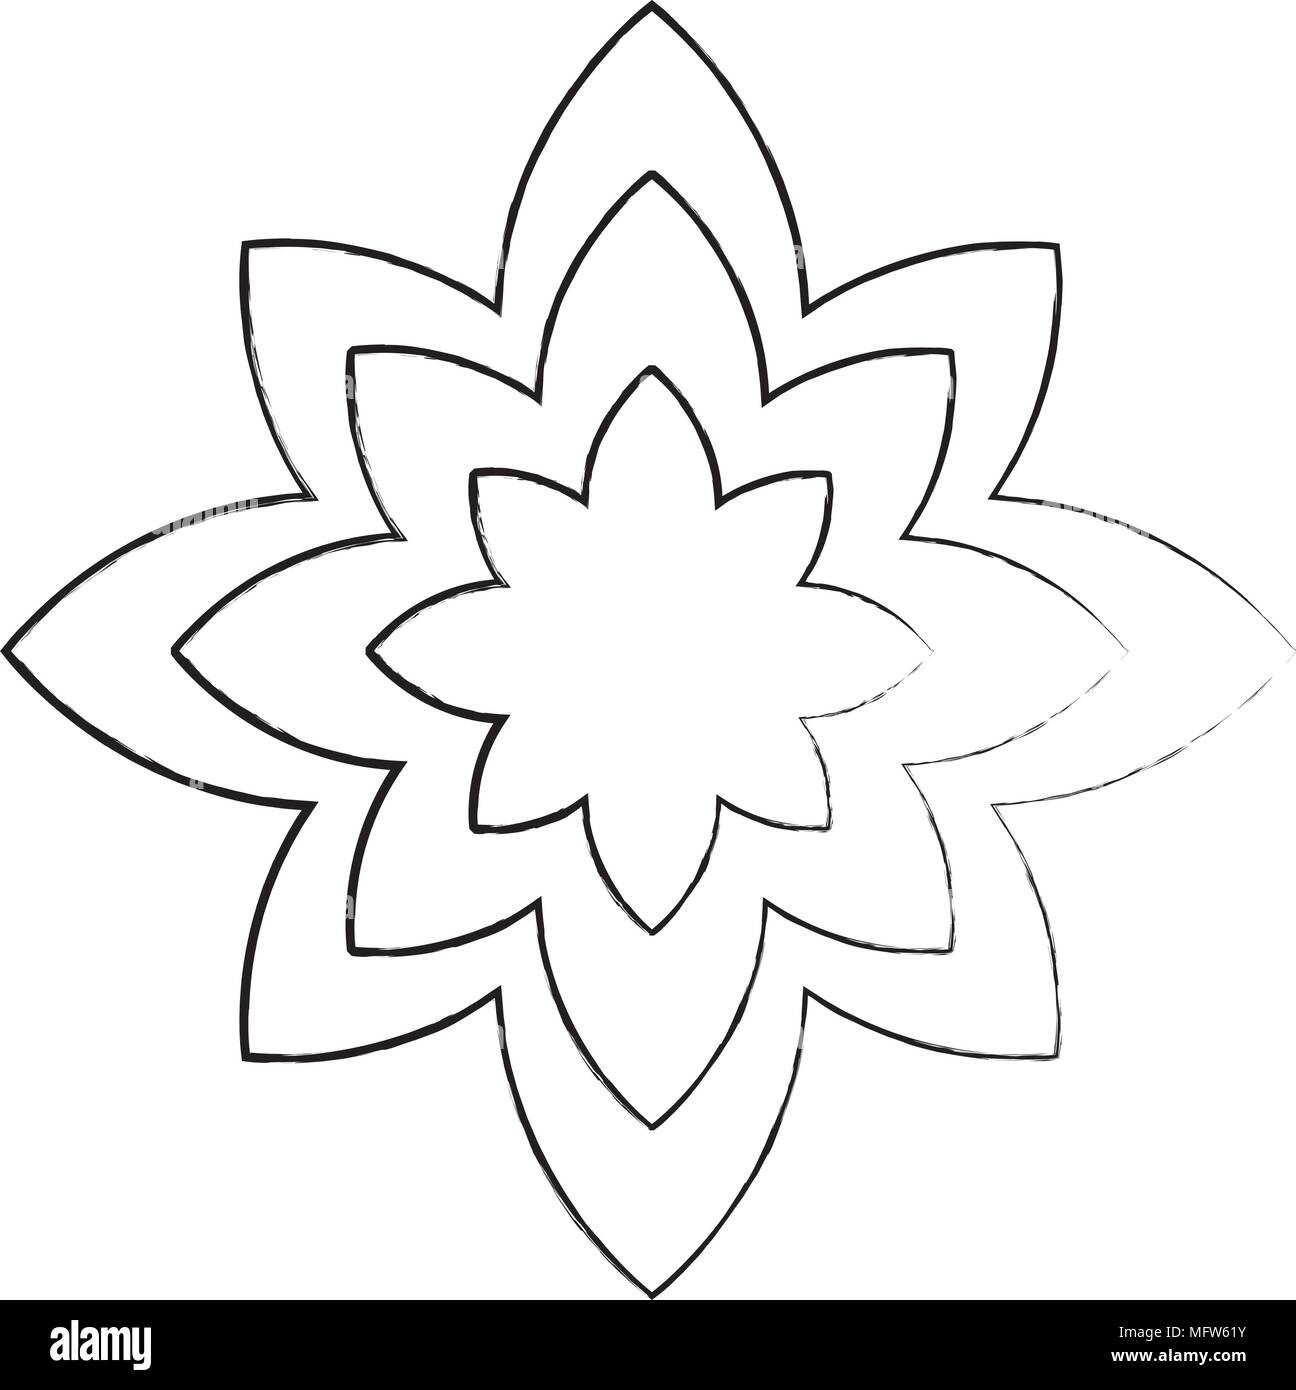 Sketch Of Lotus Flower Icon Yoga Symbol Over White Background